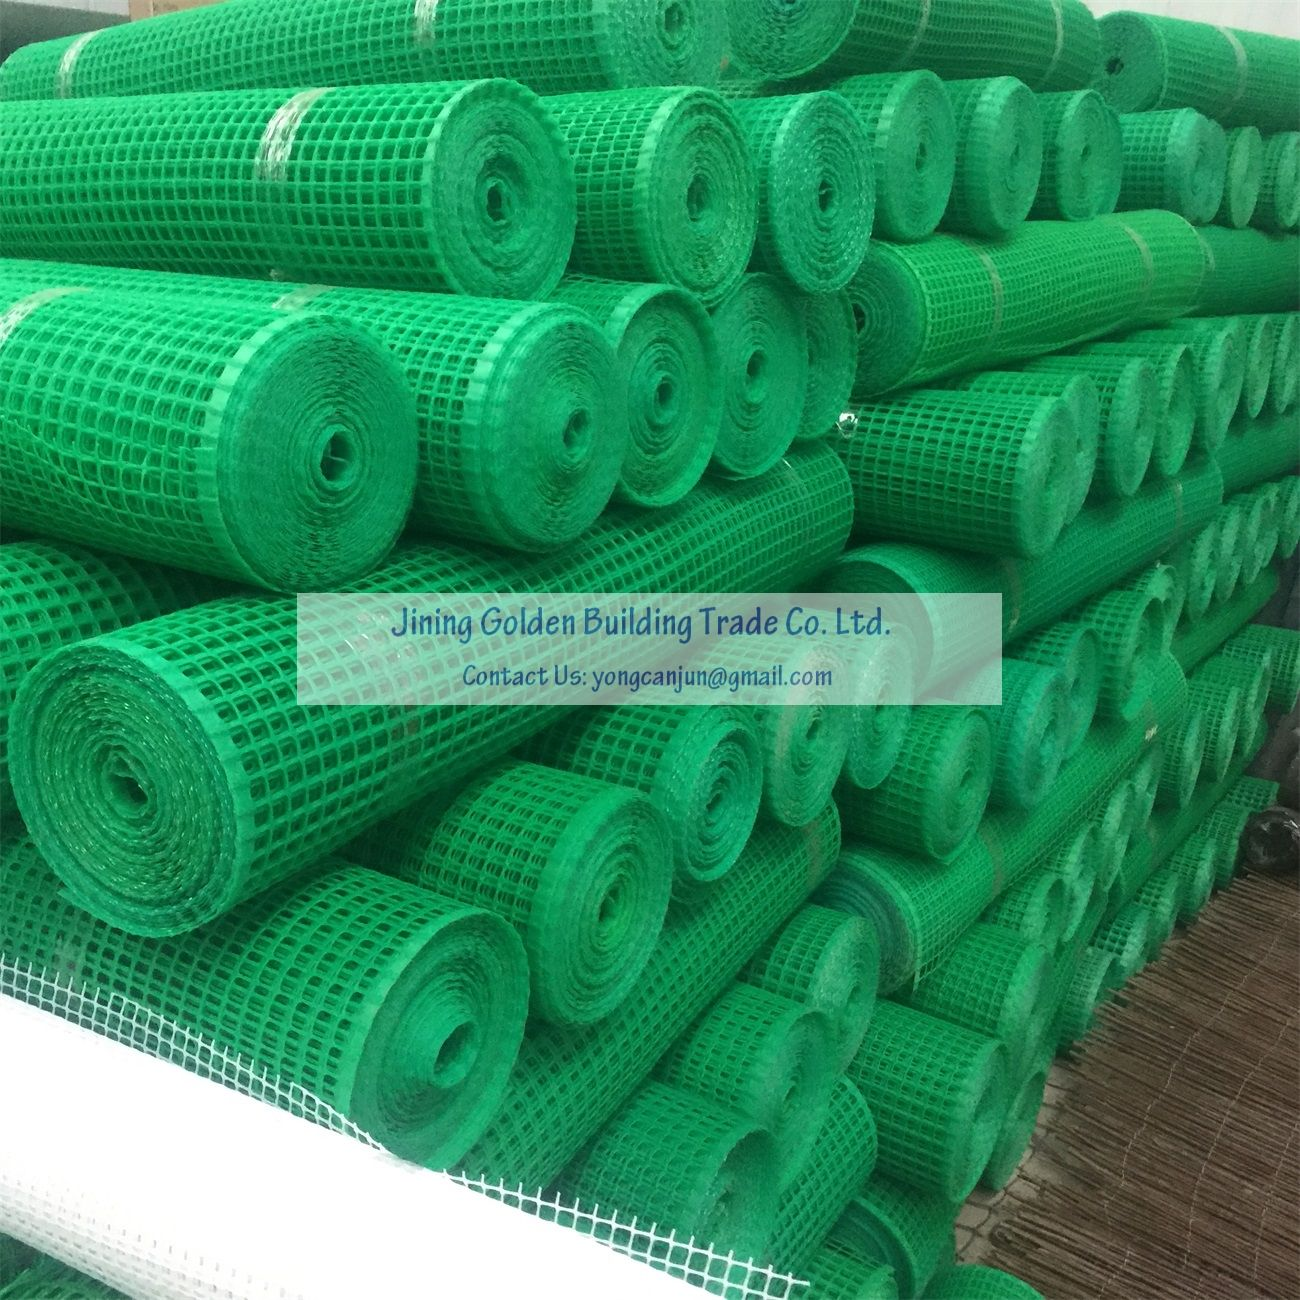 Hey I Would Like To Introduce Our Plastic Square Mesh Netting Made From Hdpe With Good Quality And Factory Price Building Trade Use Of Plastic Mesh Netting